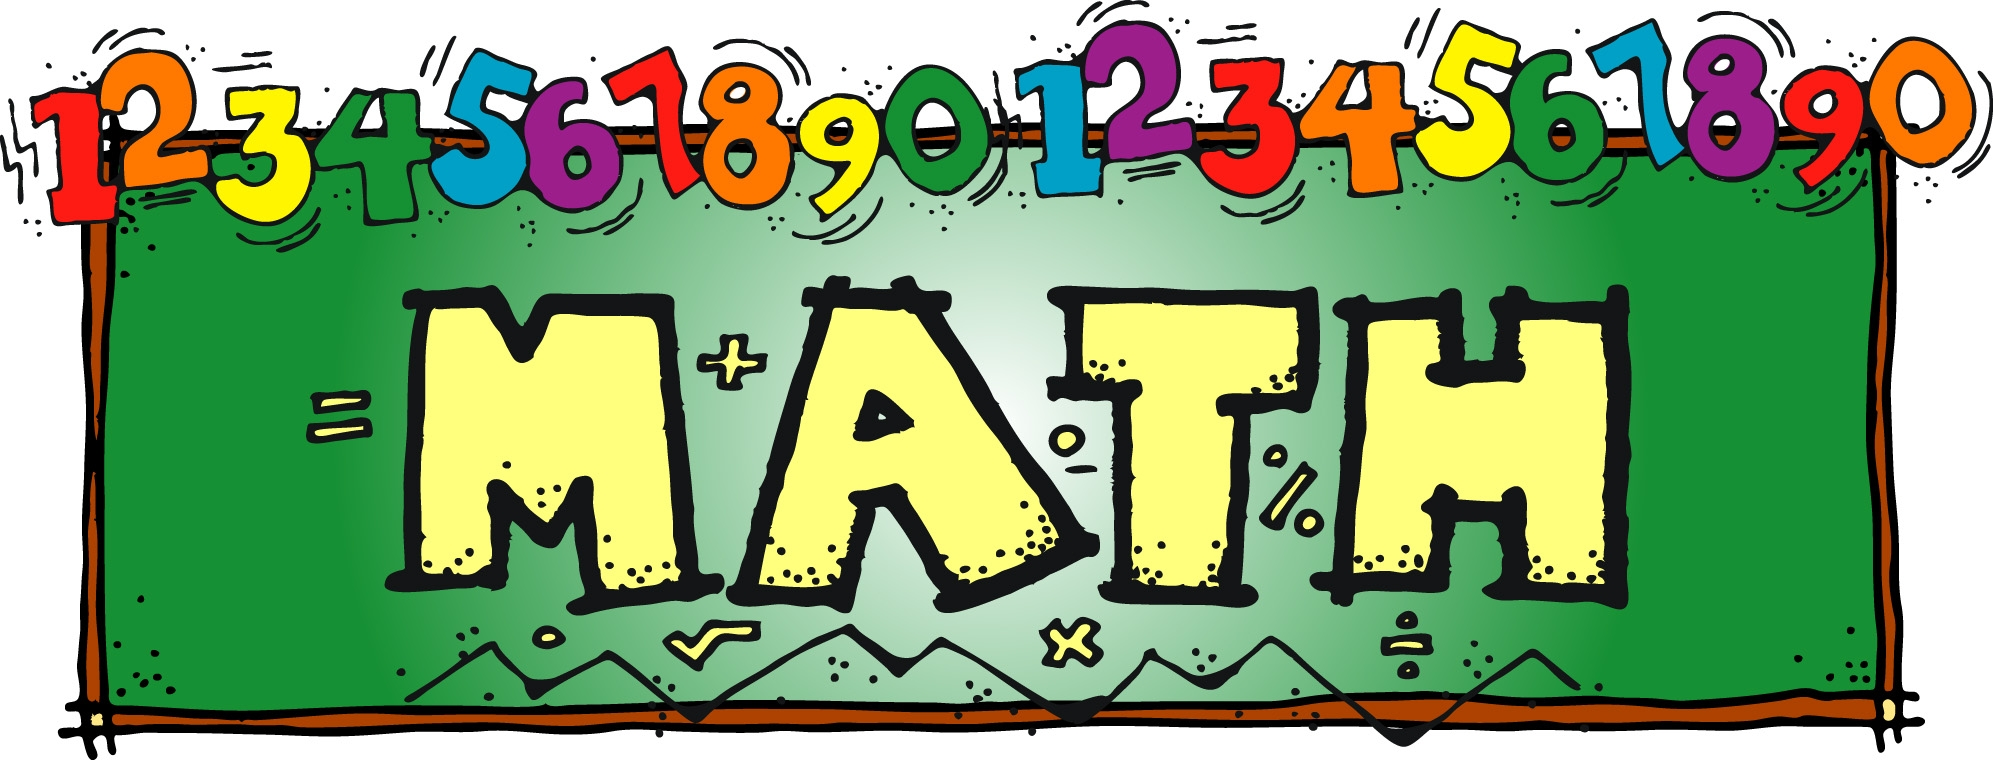 456 Geometry free clipart.